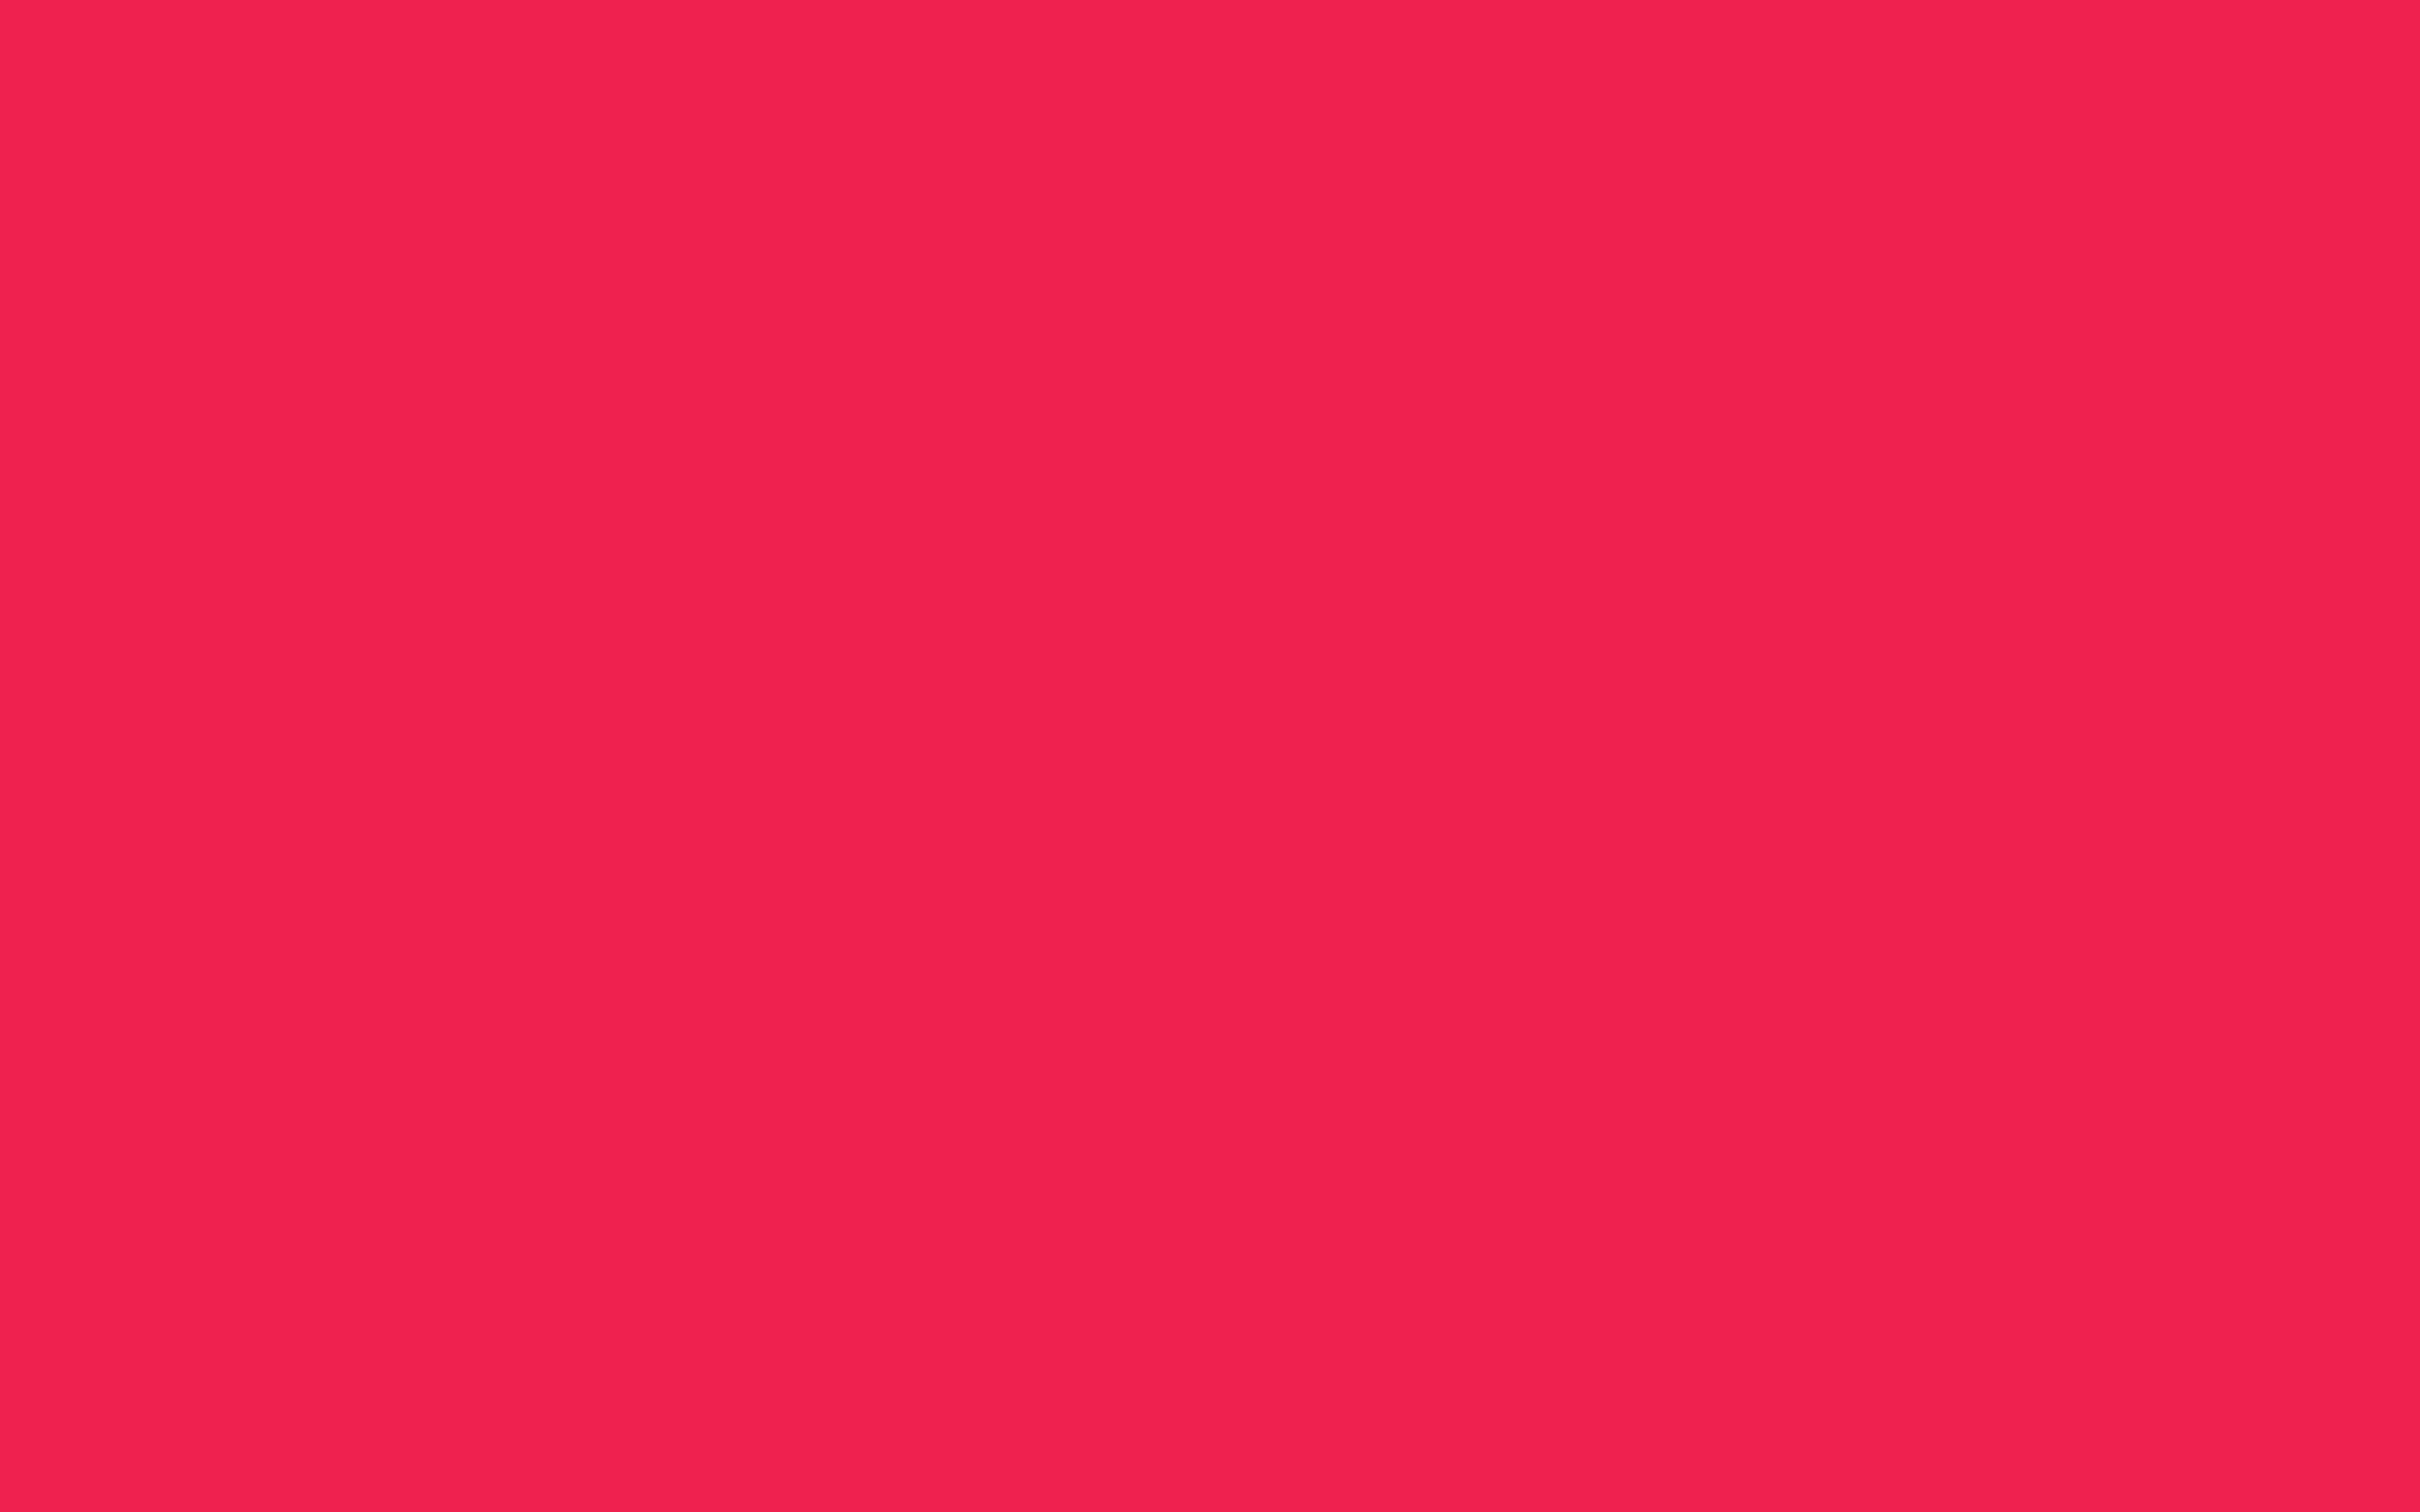 2880x1800 Red Crayola Solid Color Background